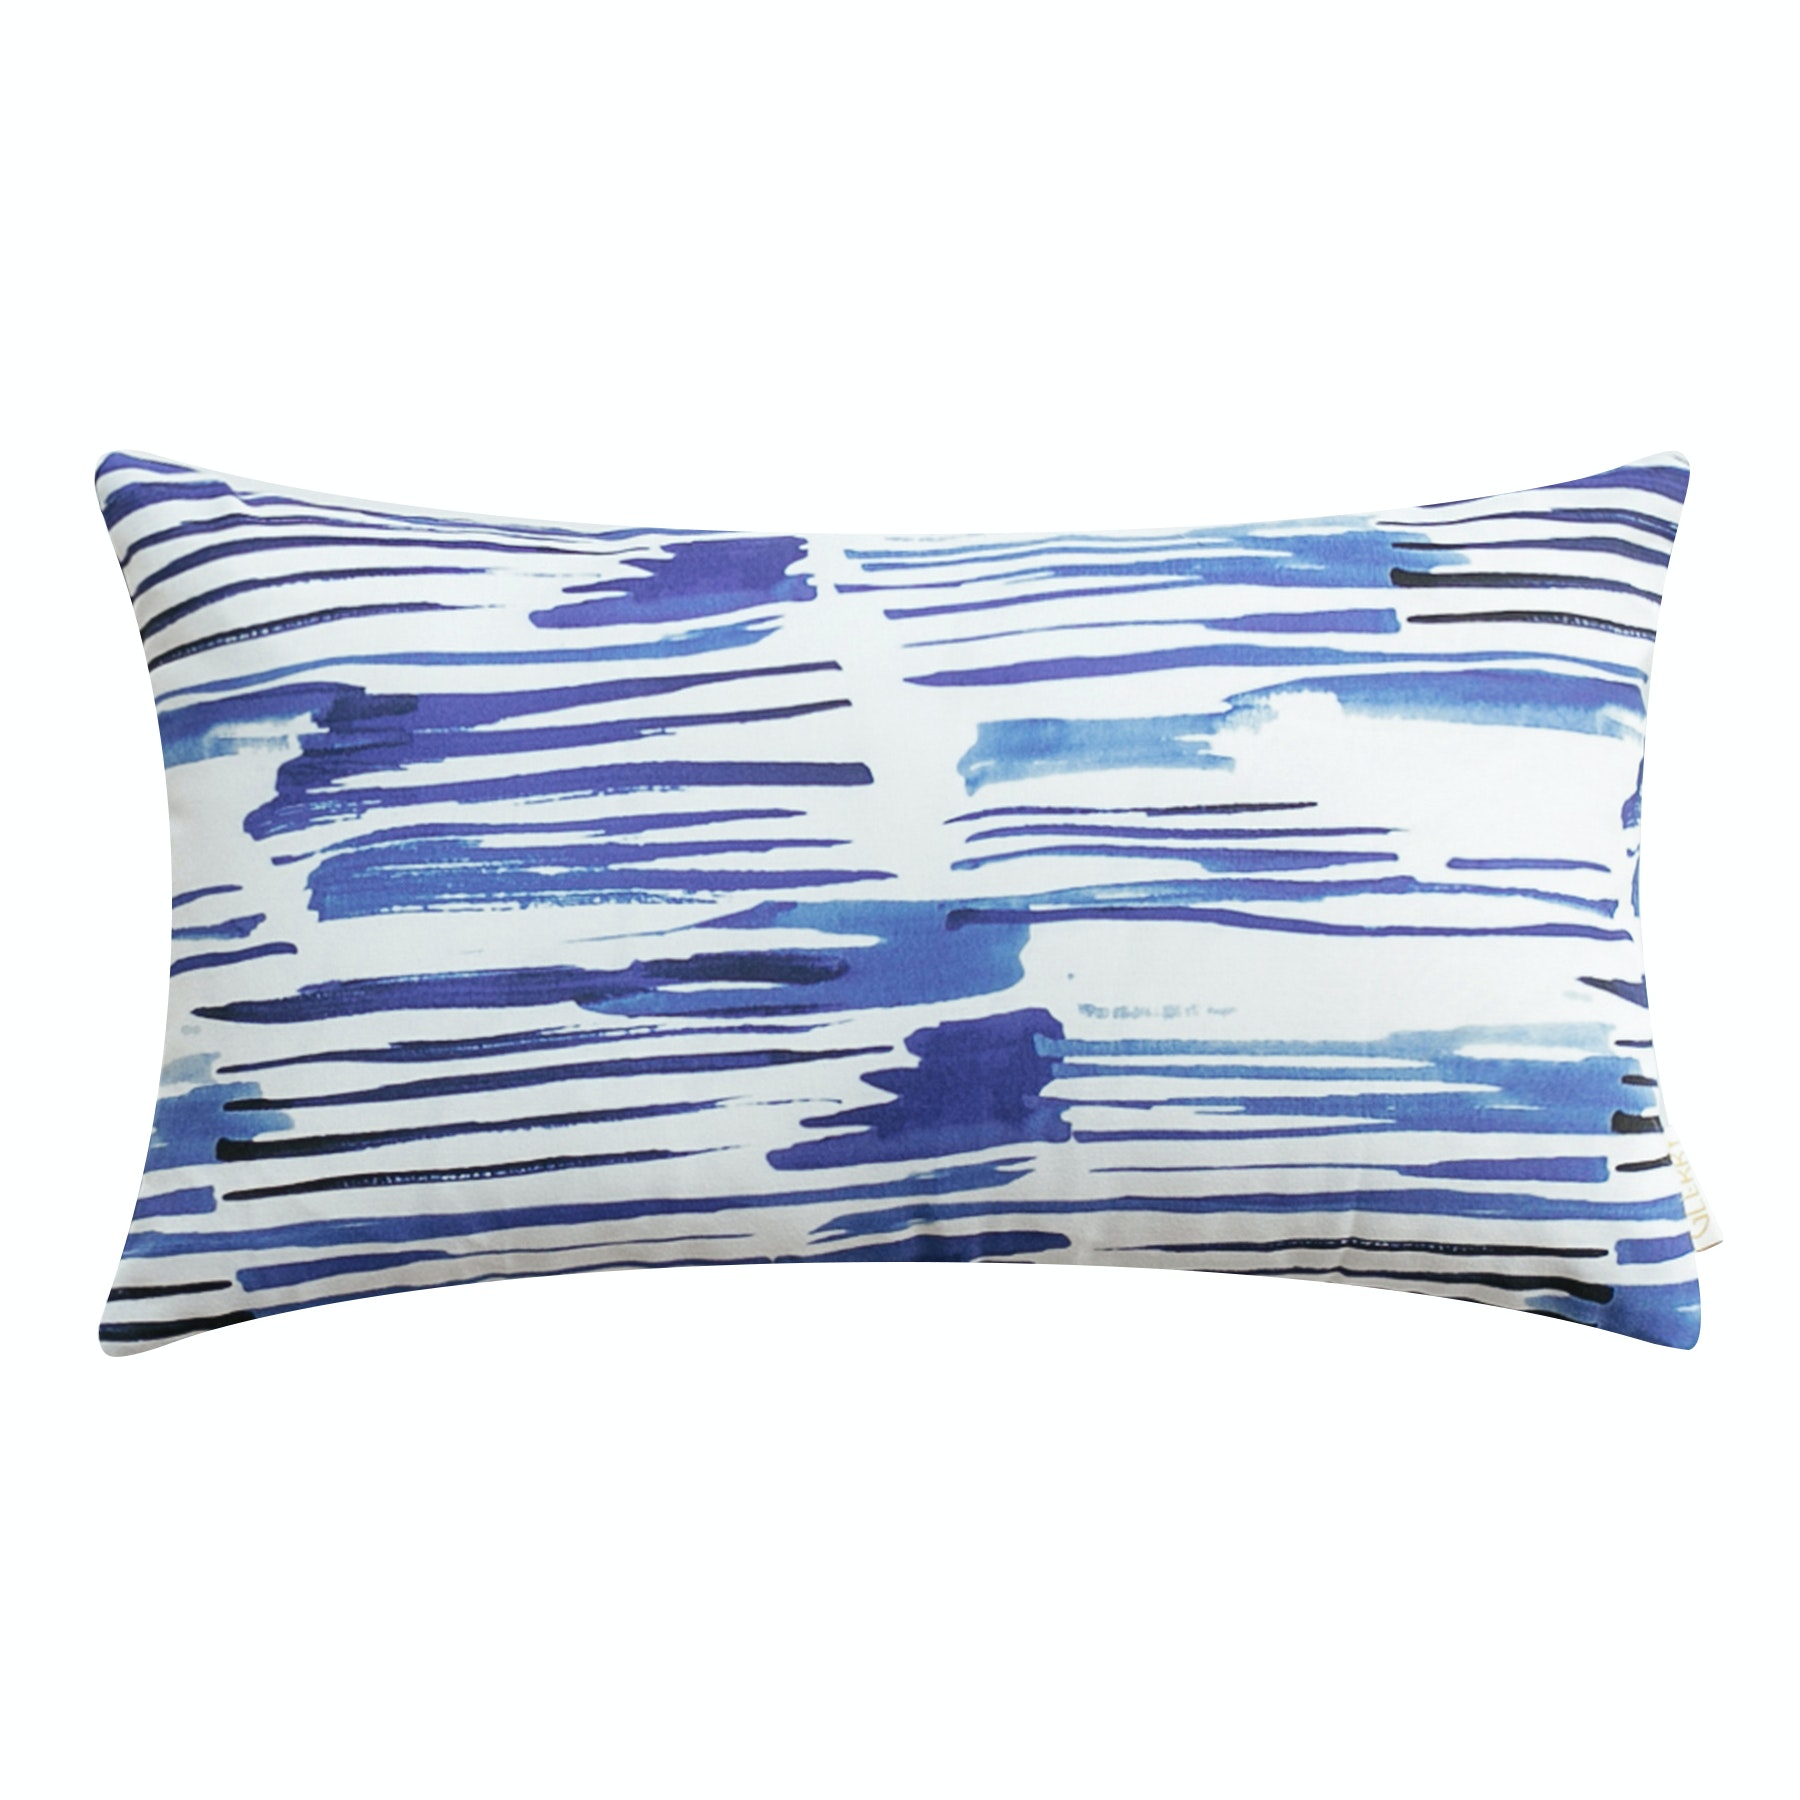 Glerry Home Decor Blue Lines Cushion 50x30cm (Insert+Cover)